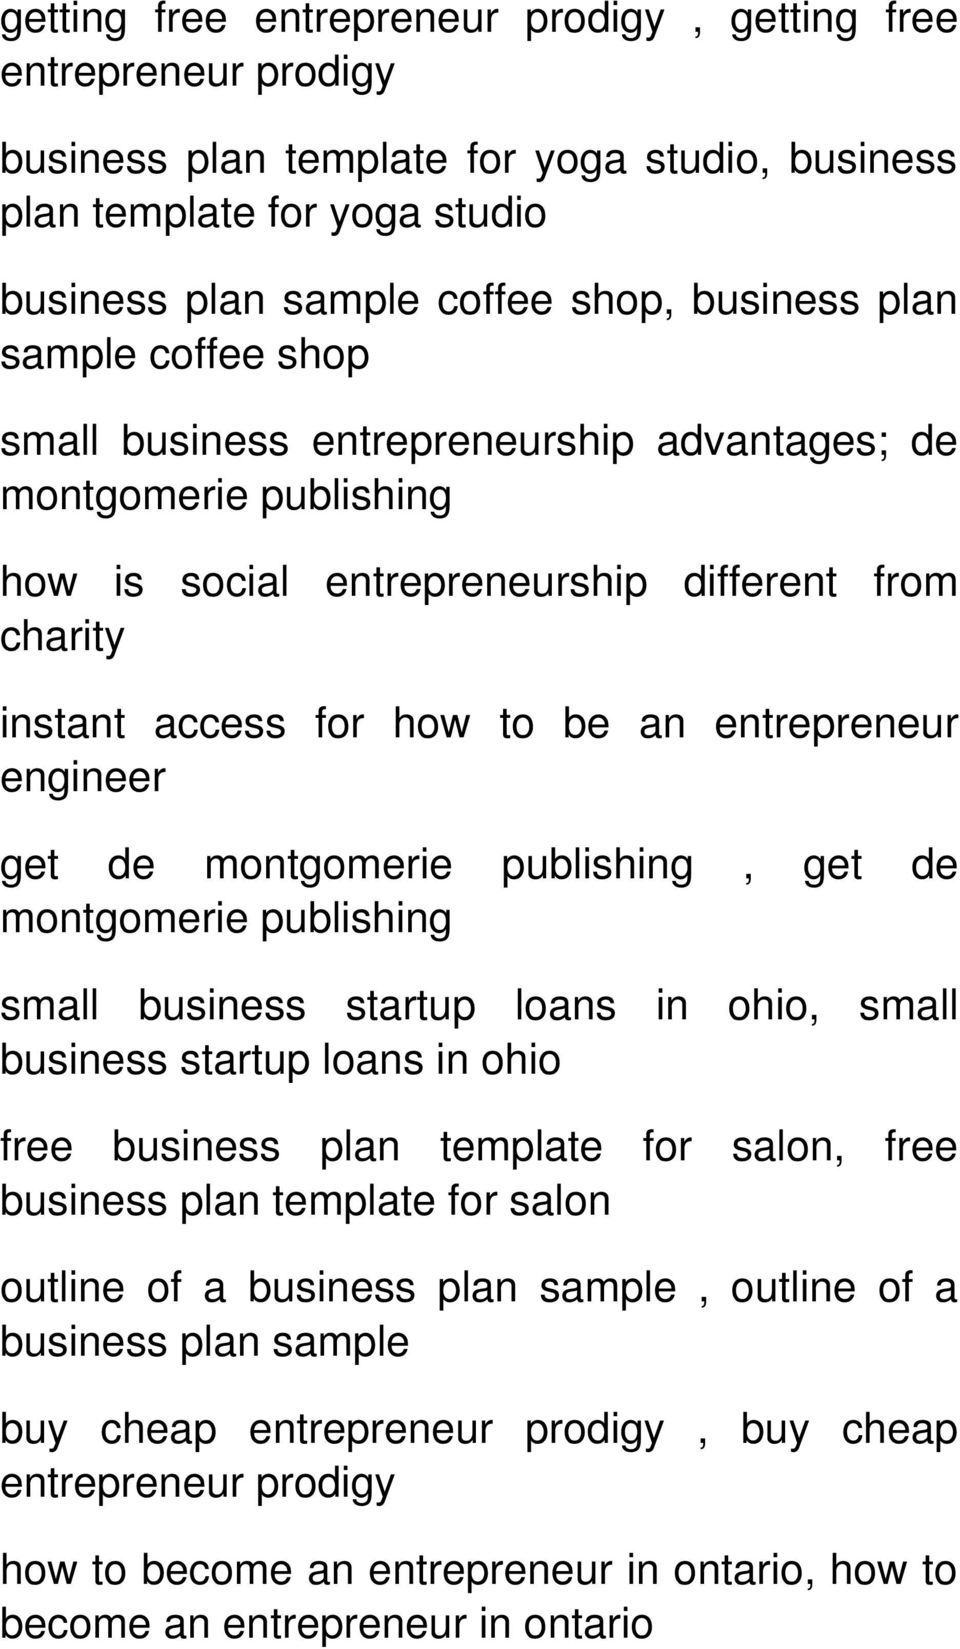 Marketing Assignment Sample on Entrepreneurship and Innovation